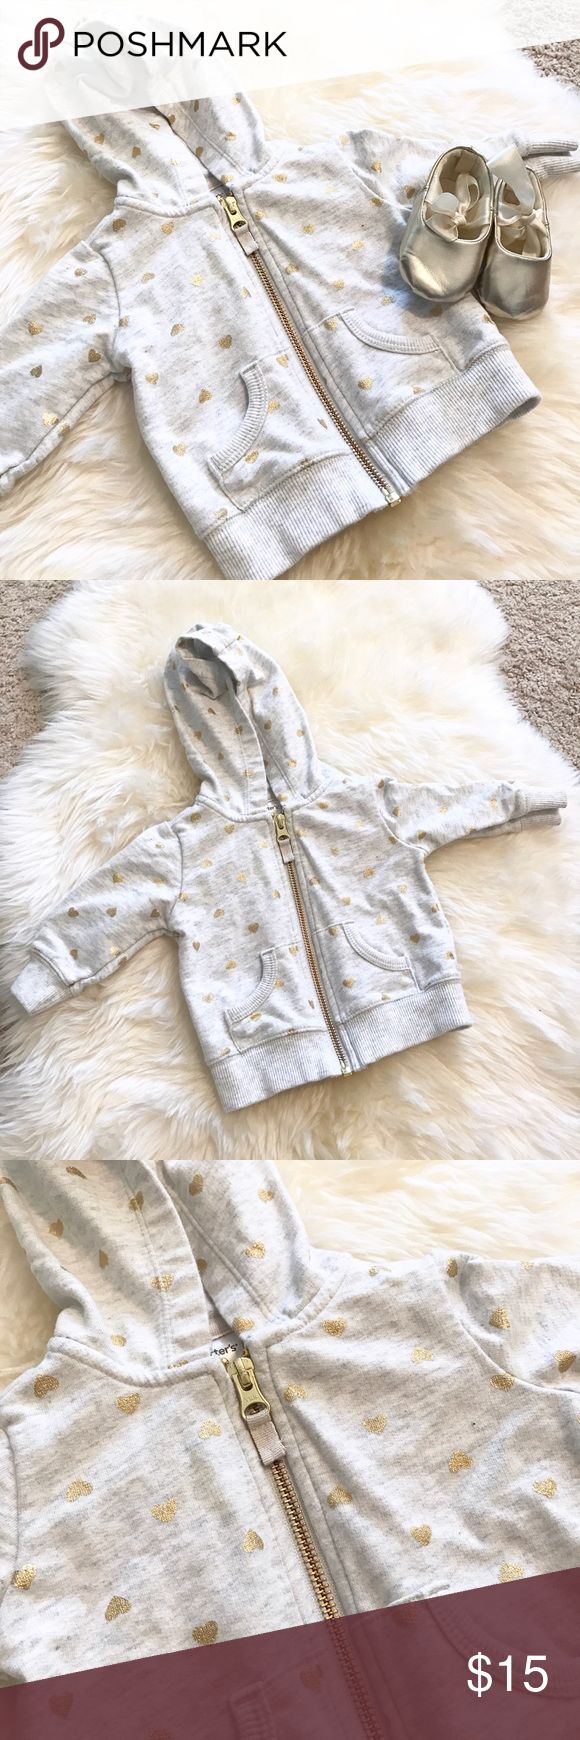 *BUNDLE DEAL* 2 for 1 Zip up hoodie & gold shoes Super adorable zip up hoodie with gold hearts and gold slip ons with lace to match! Used once. In excellent condition. Other